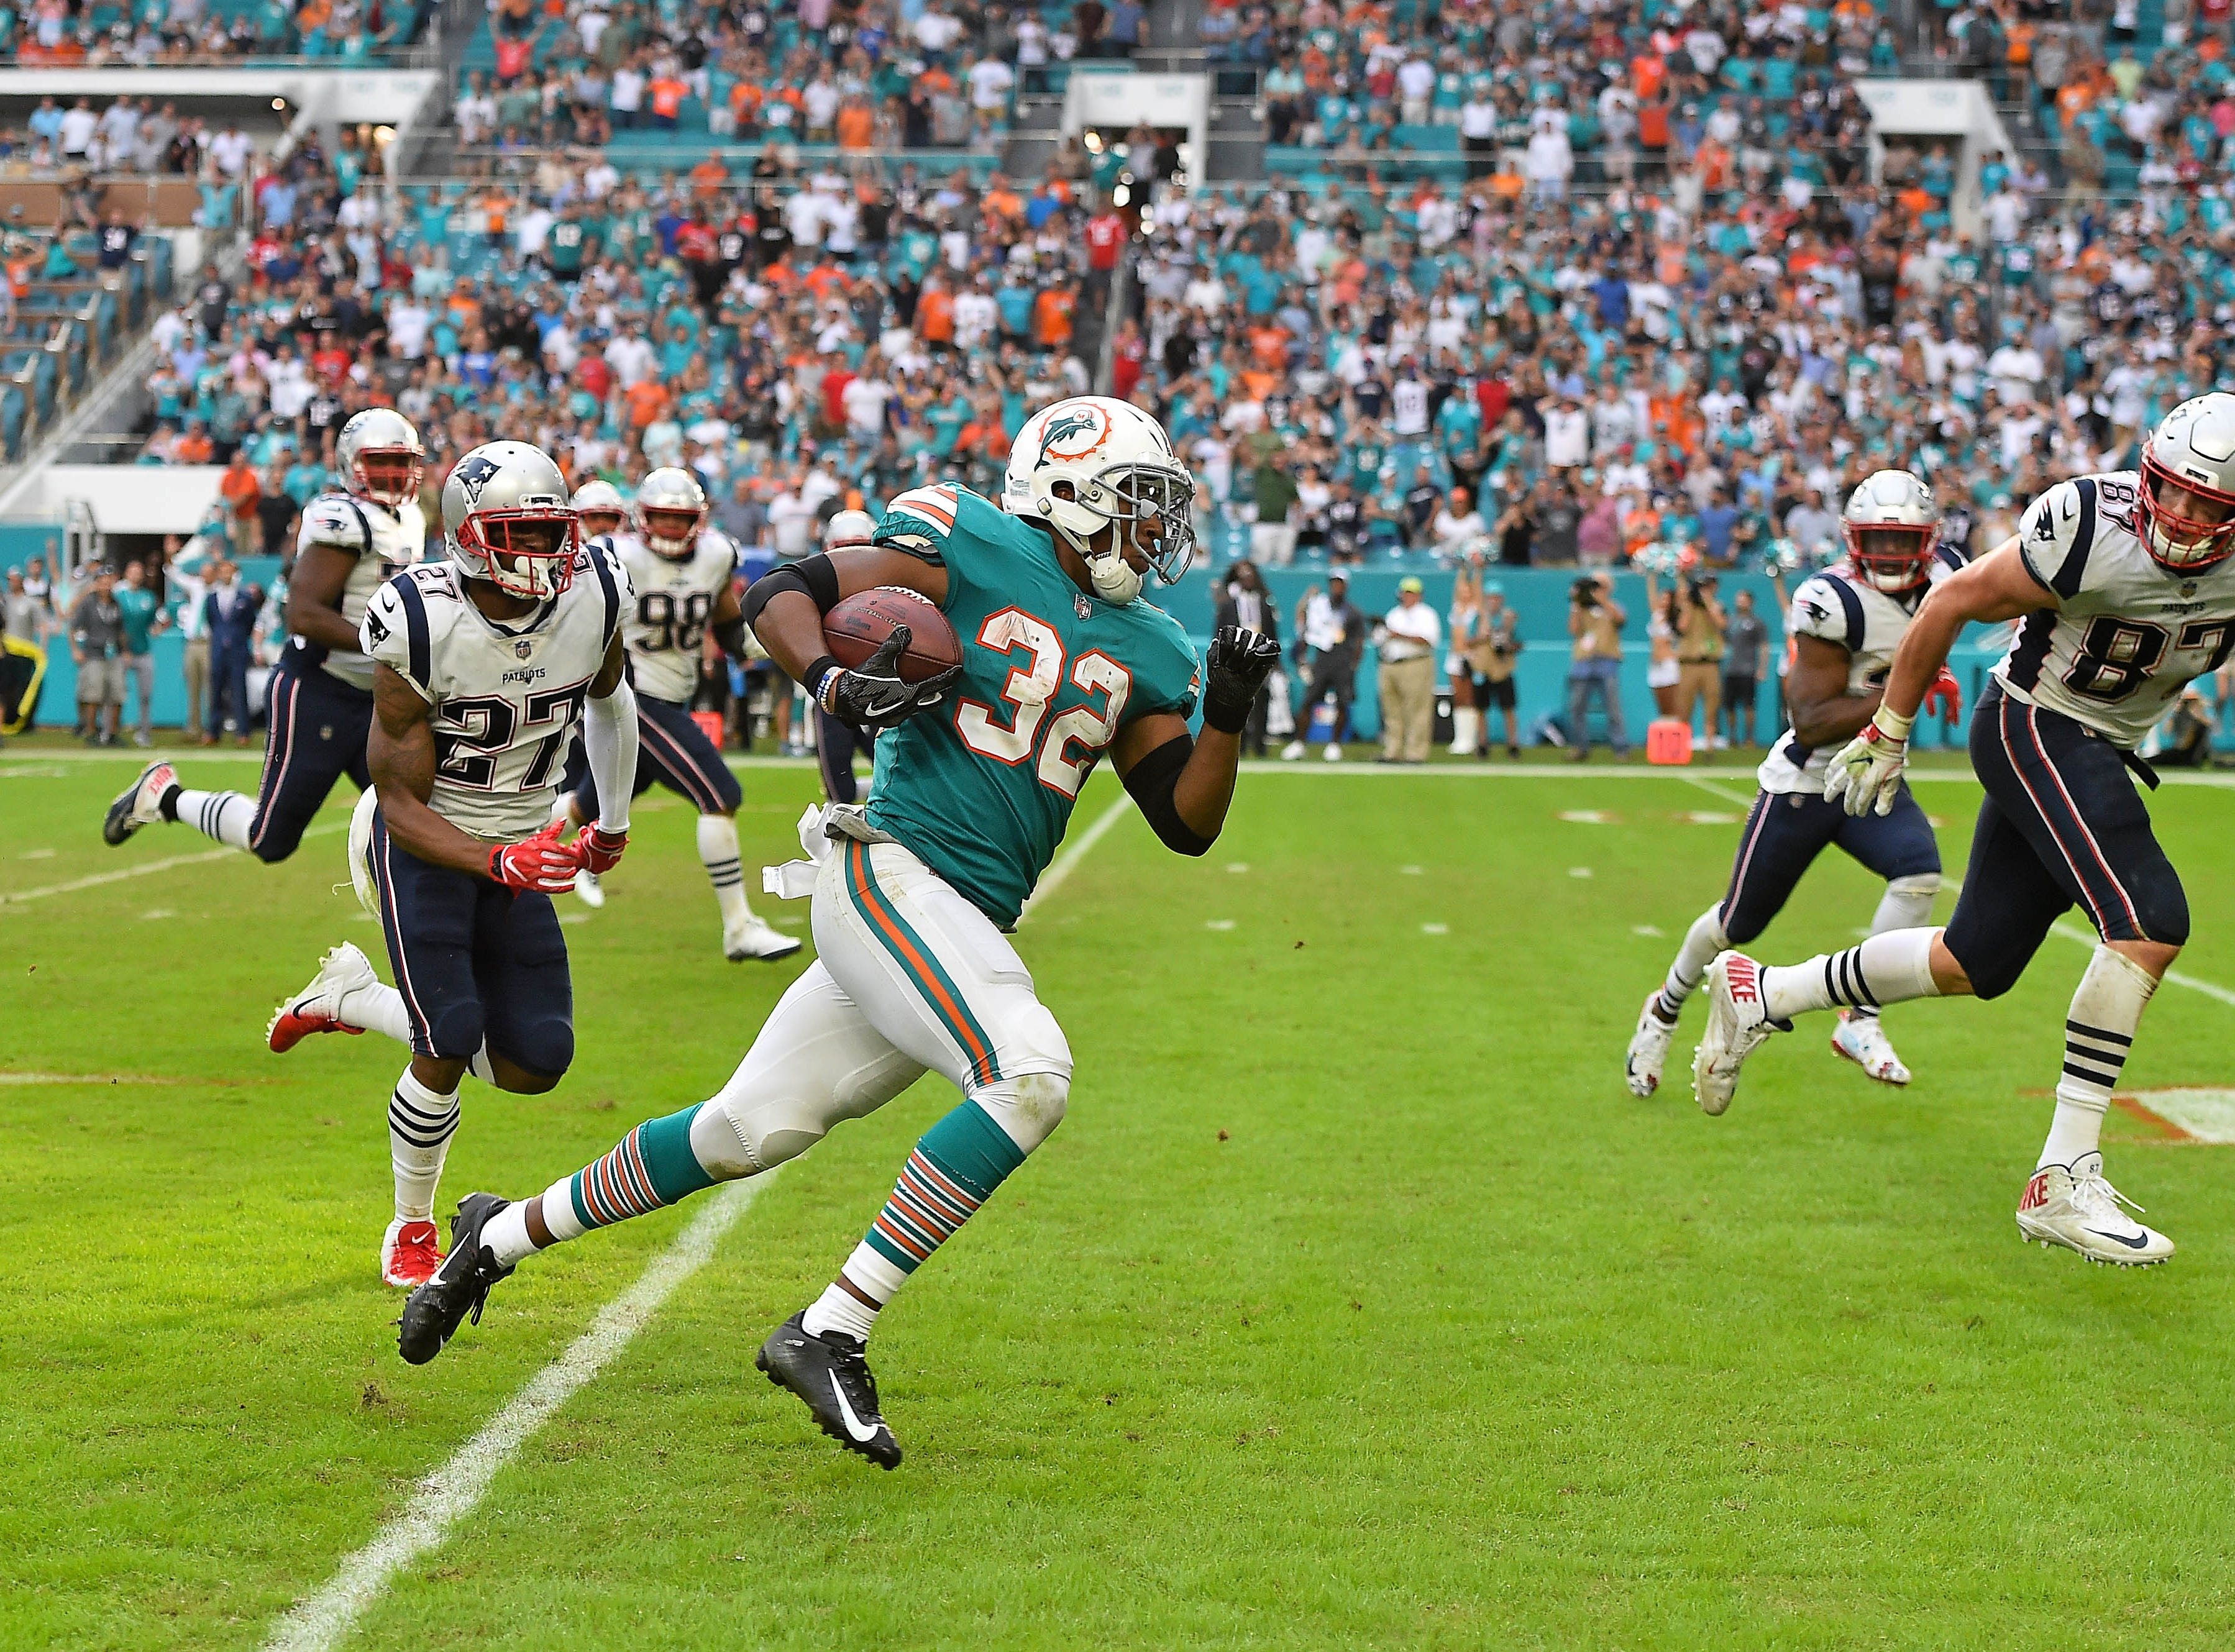 Dolphins running back Kenyan Drake runs the ball on a flea-flicker to score against the Patriots.